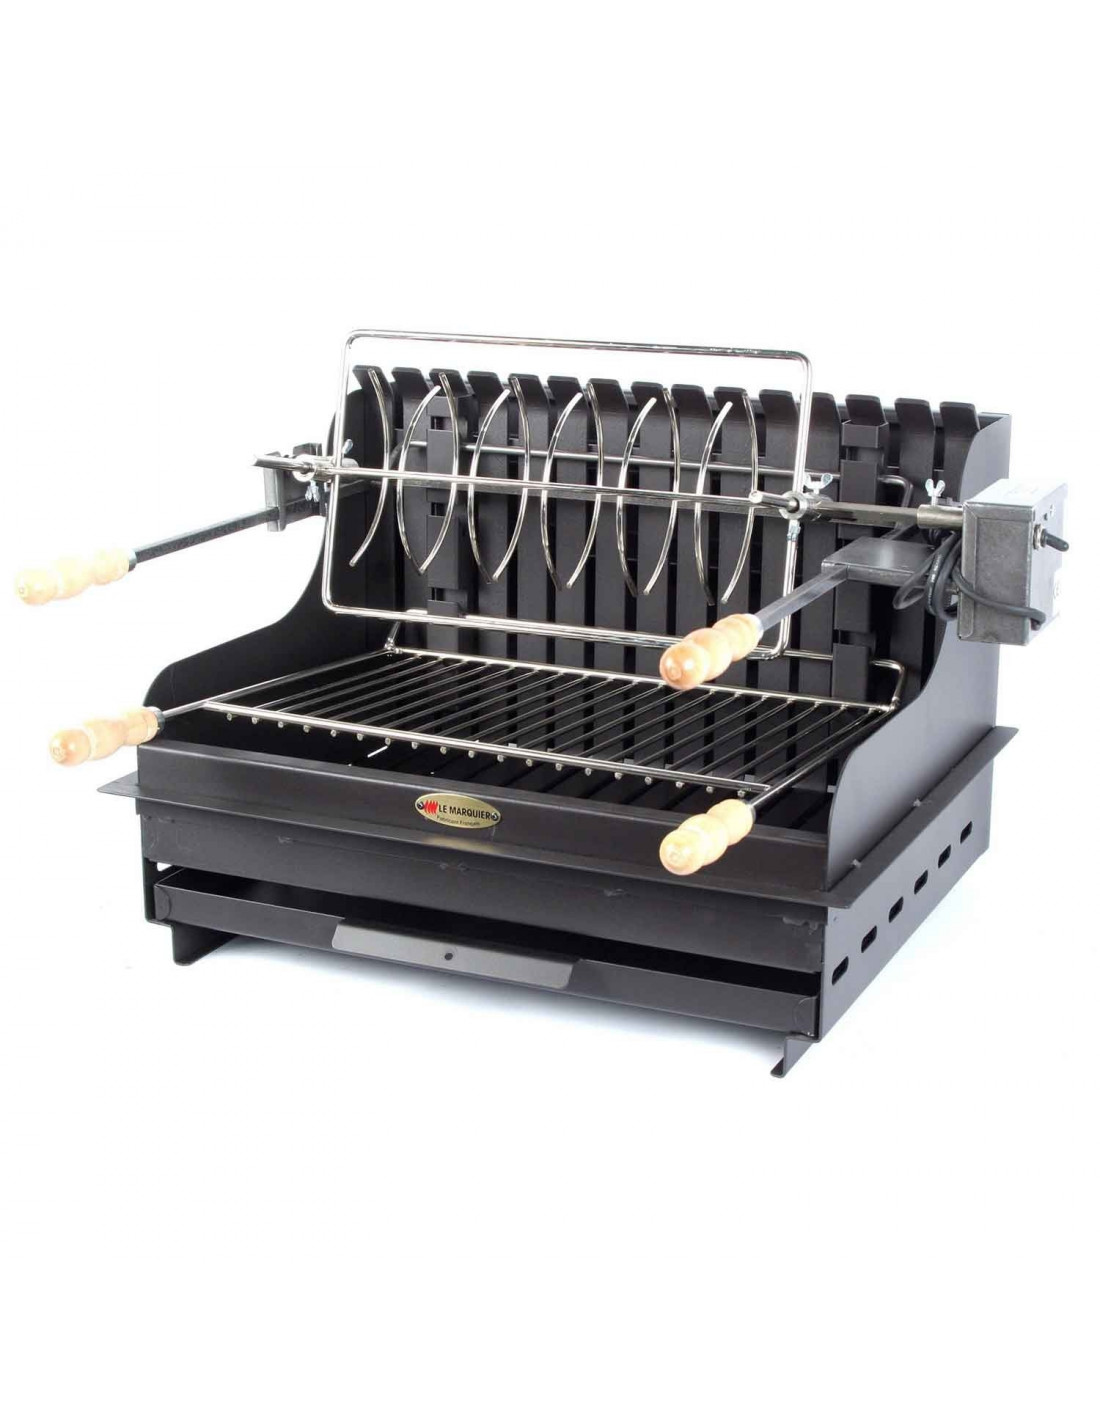 Barbecue charbon encastrable le marquier mendy - Barbecue vertical gaz ...